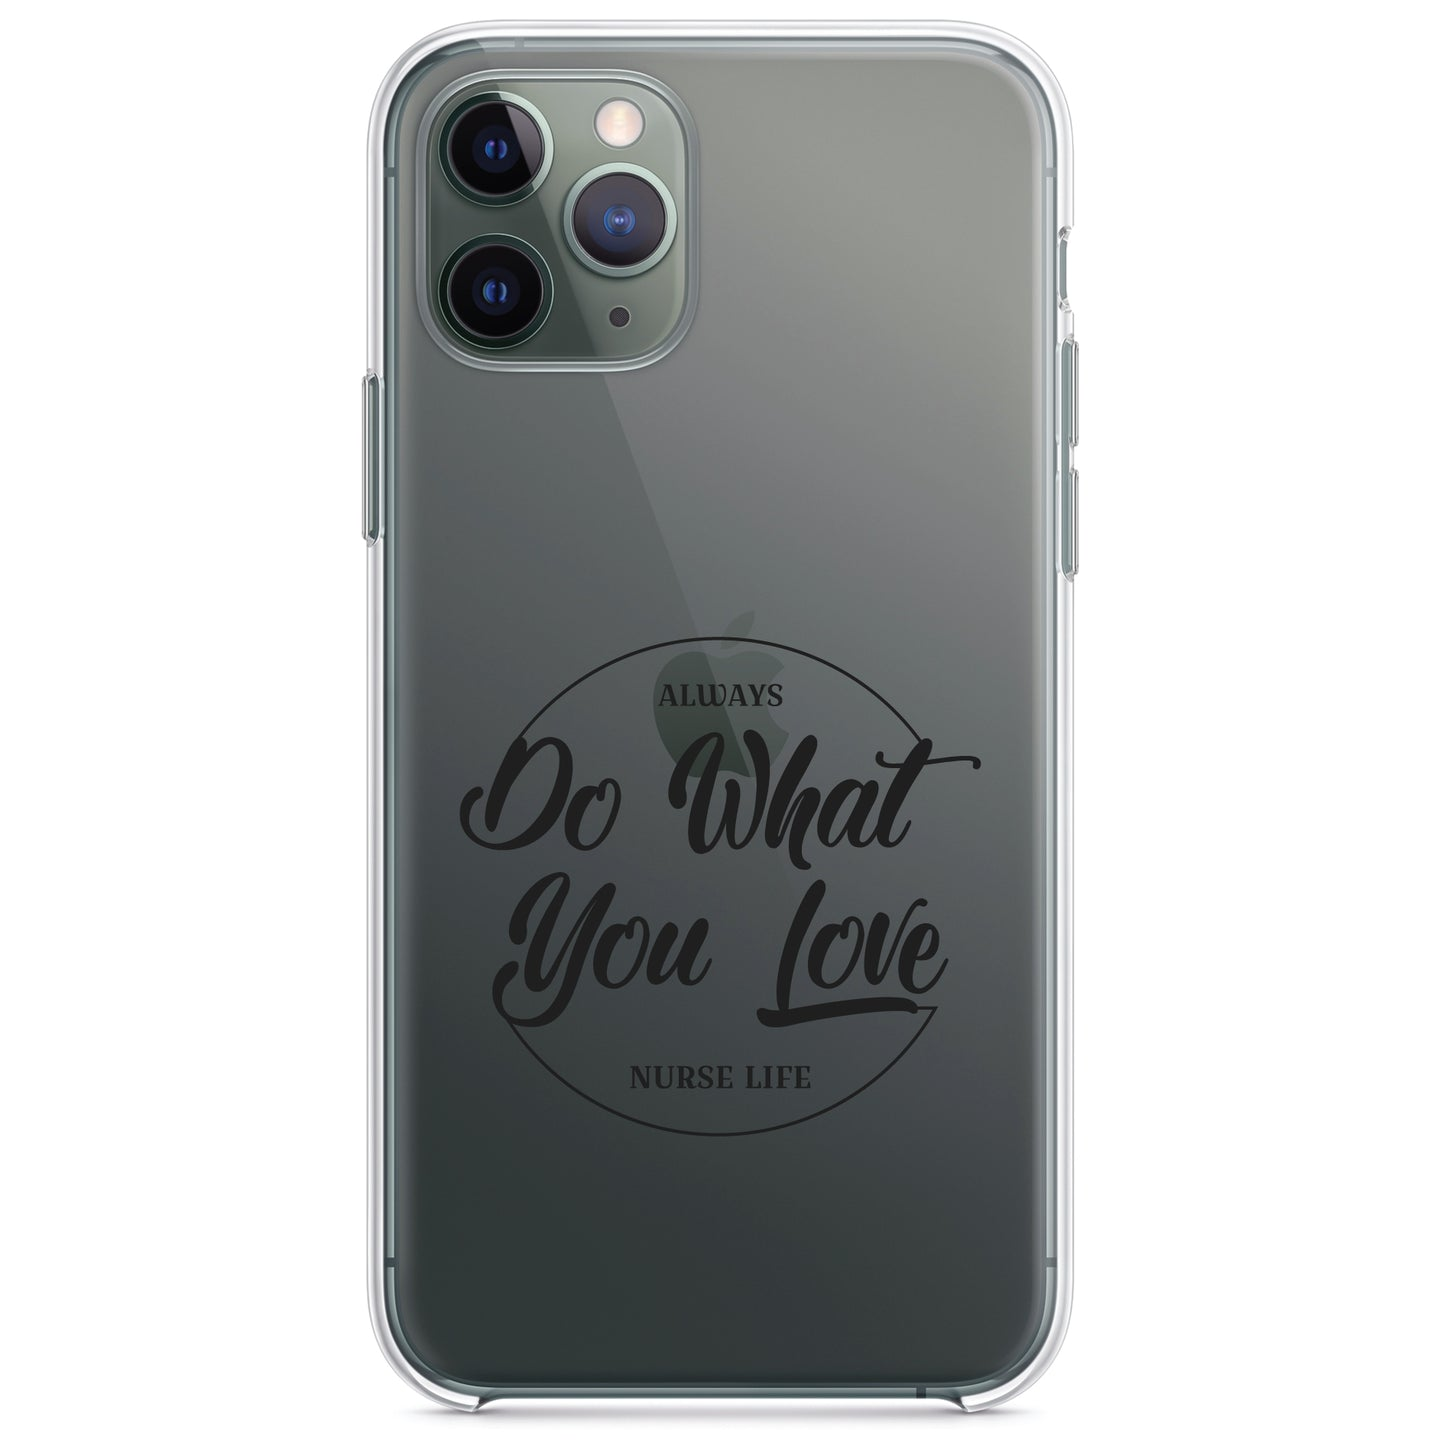 DistinctInk® Clear Shockproof Hybrid Case for Apple iPhone / Samsung Galaxy / Google Pixel - Always Do What You Love - Nurse Life Black